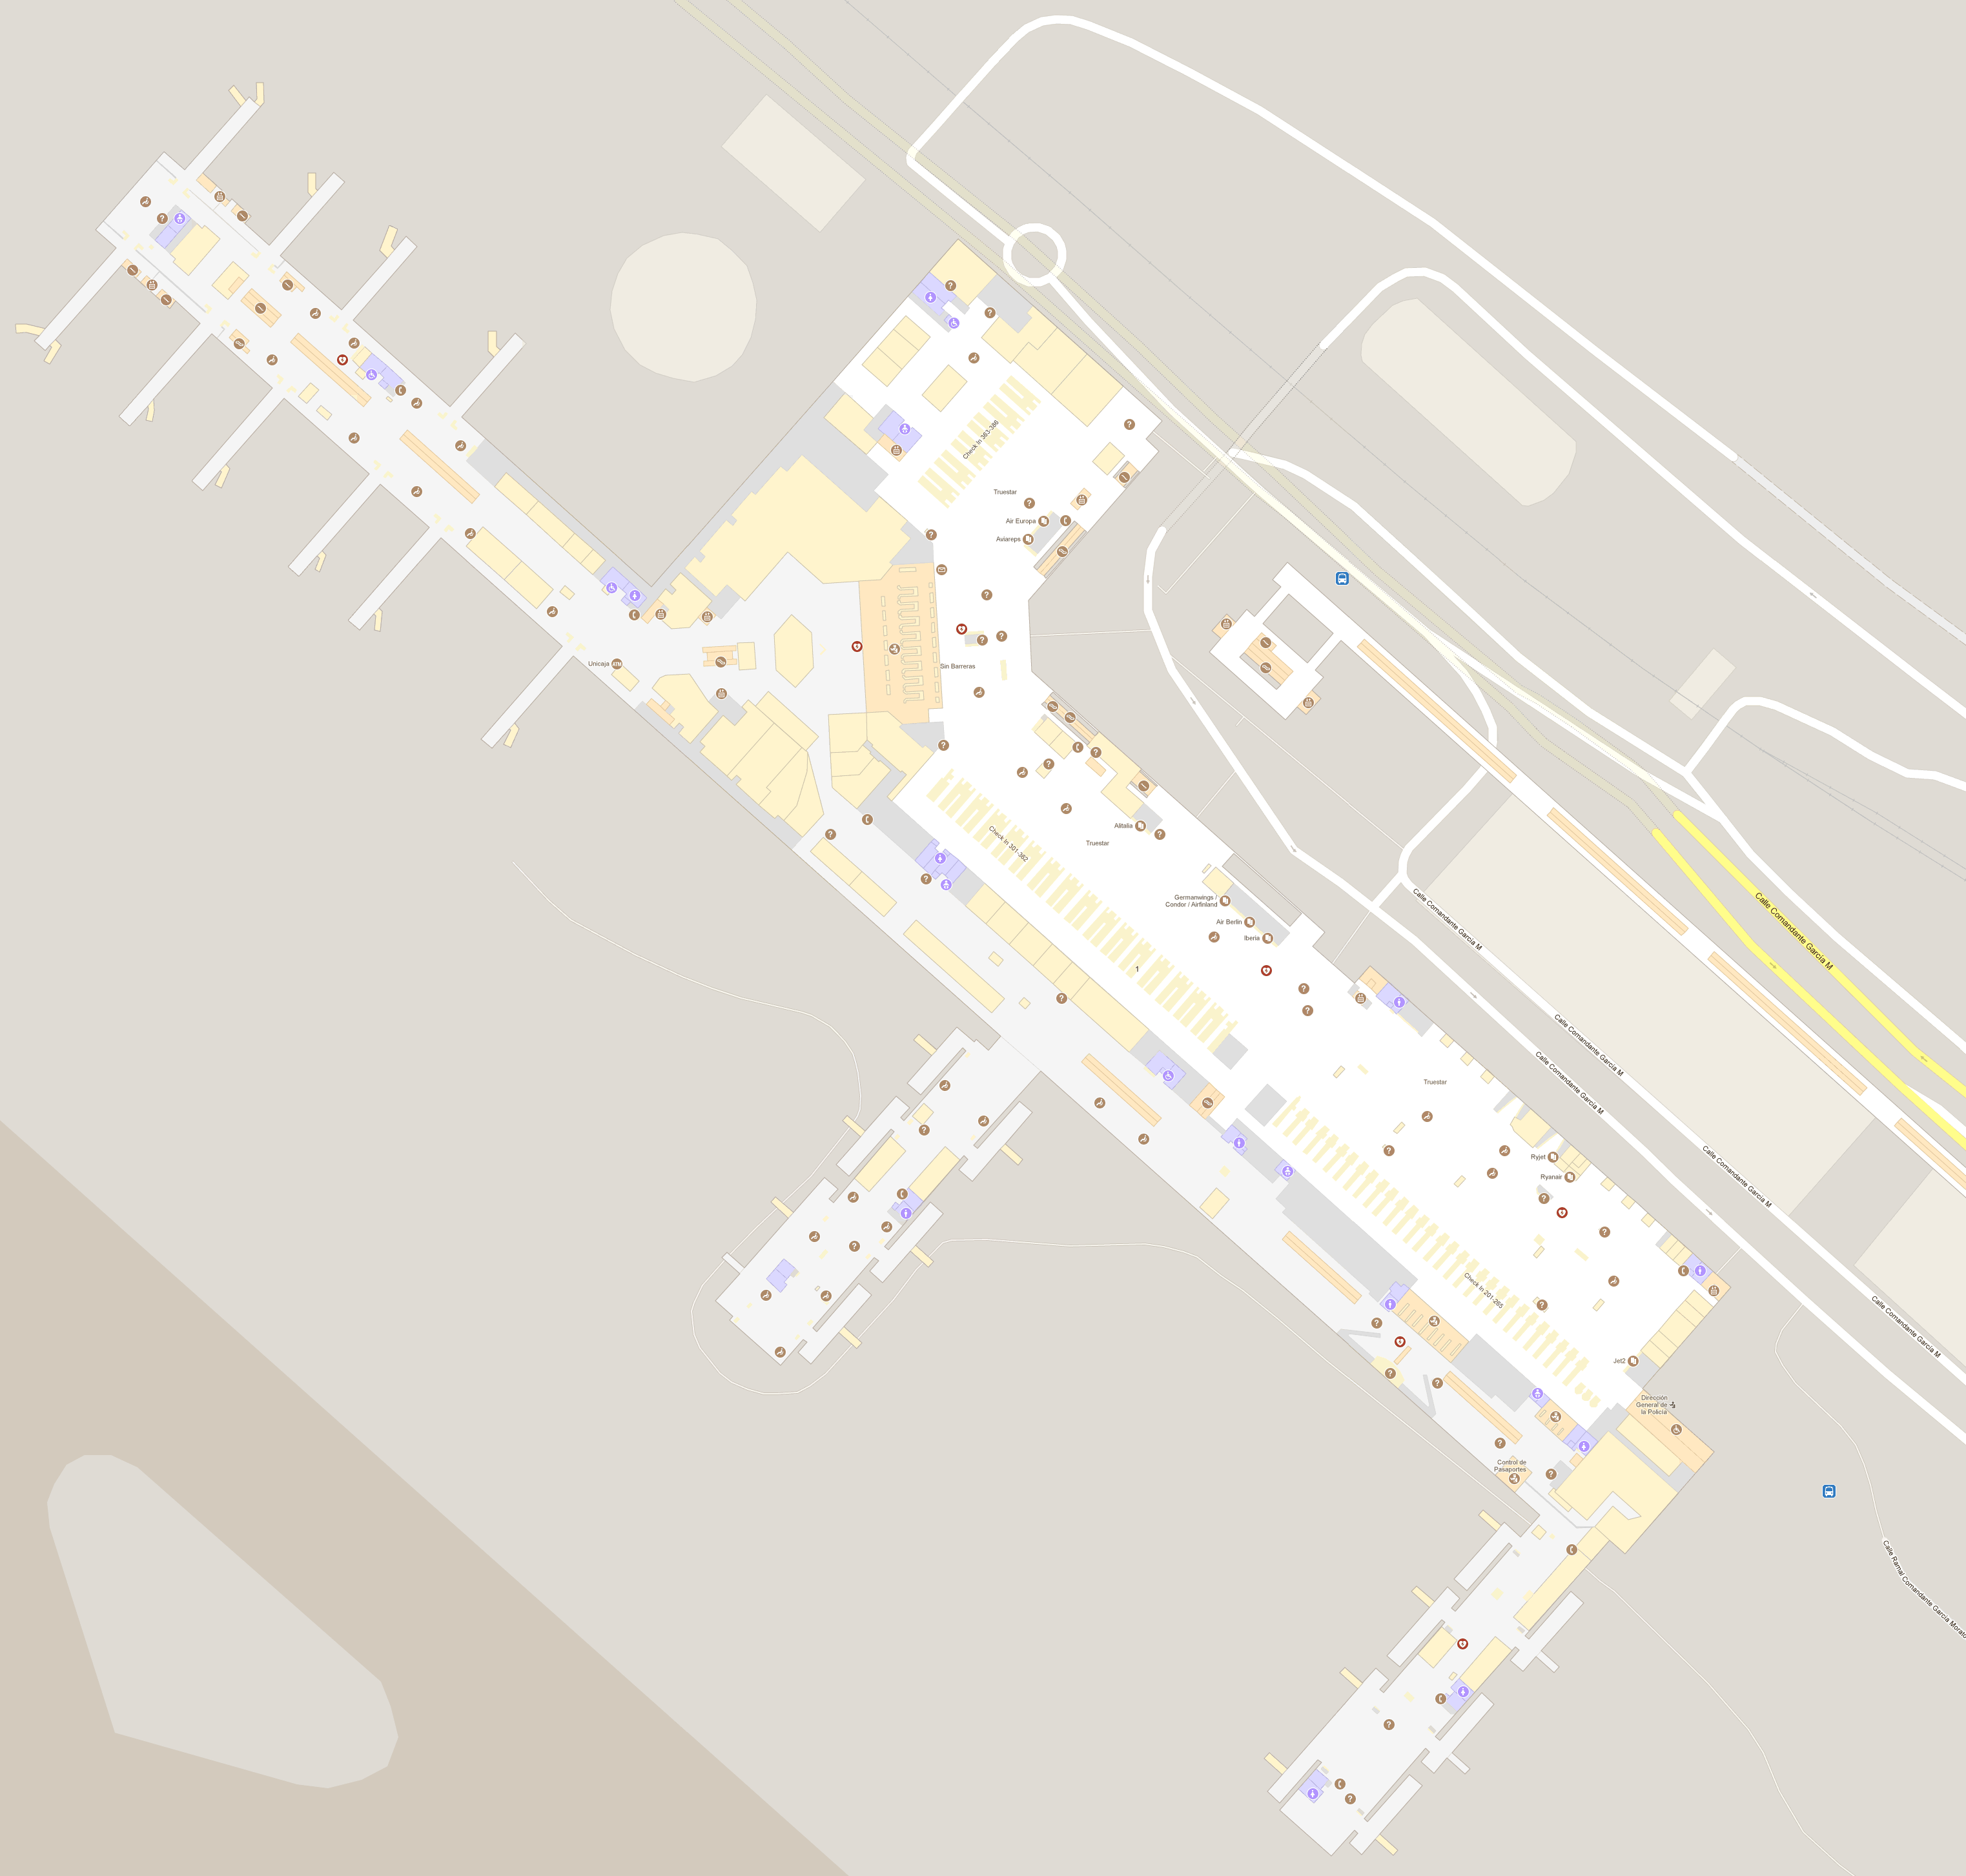 malaga karta Malaga Airport Maps | Location of Malaga Airport malaga karta